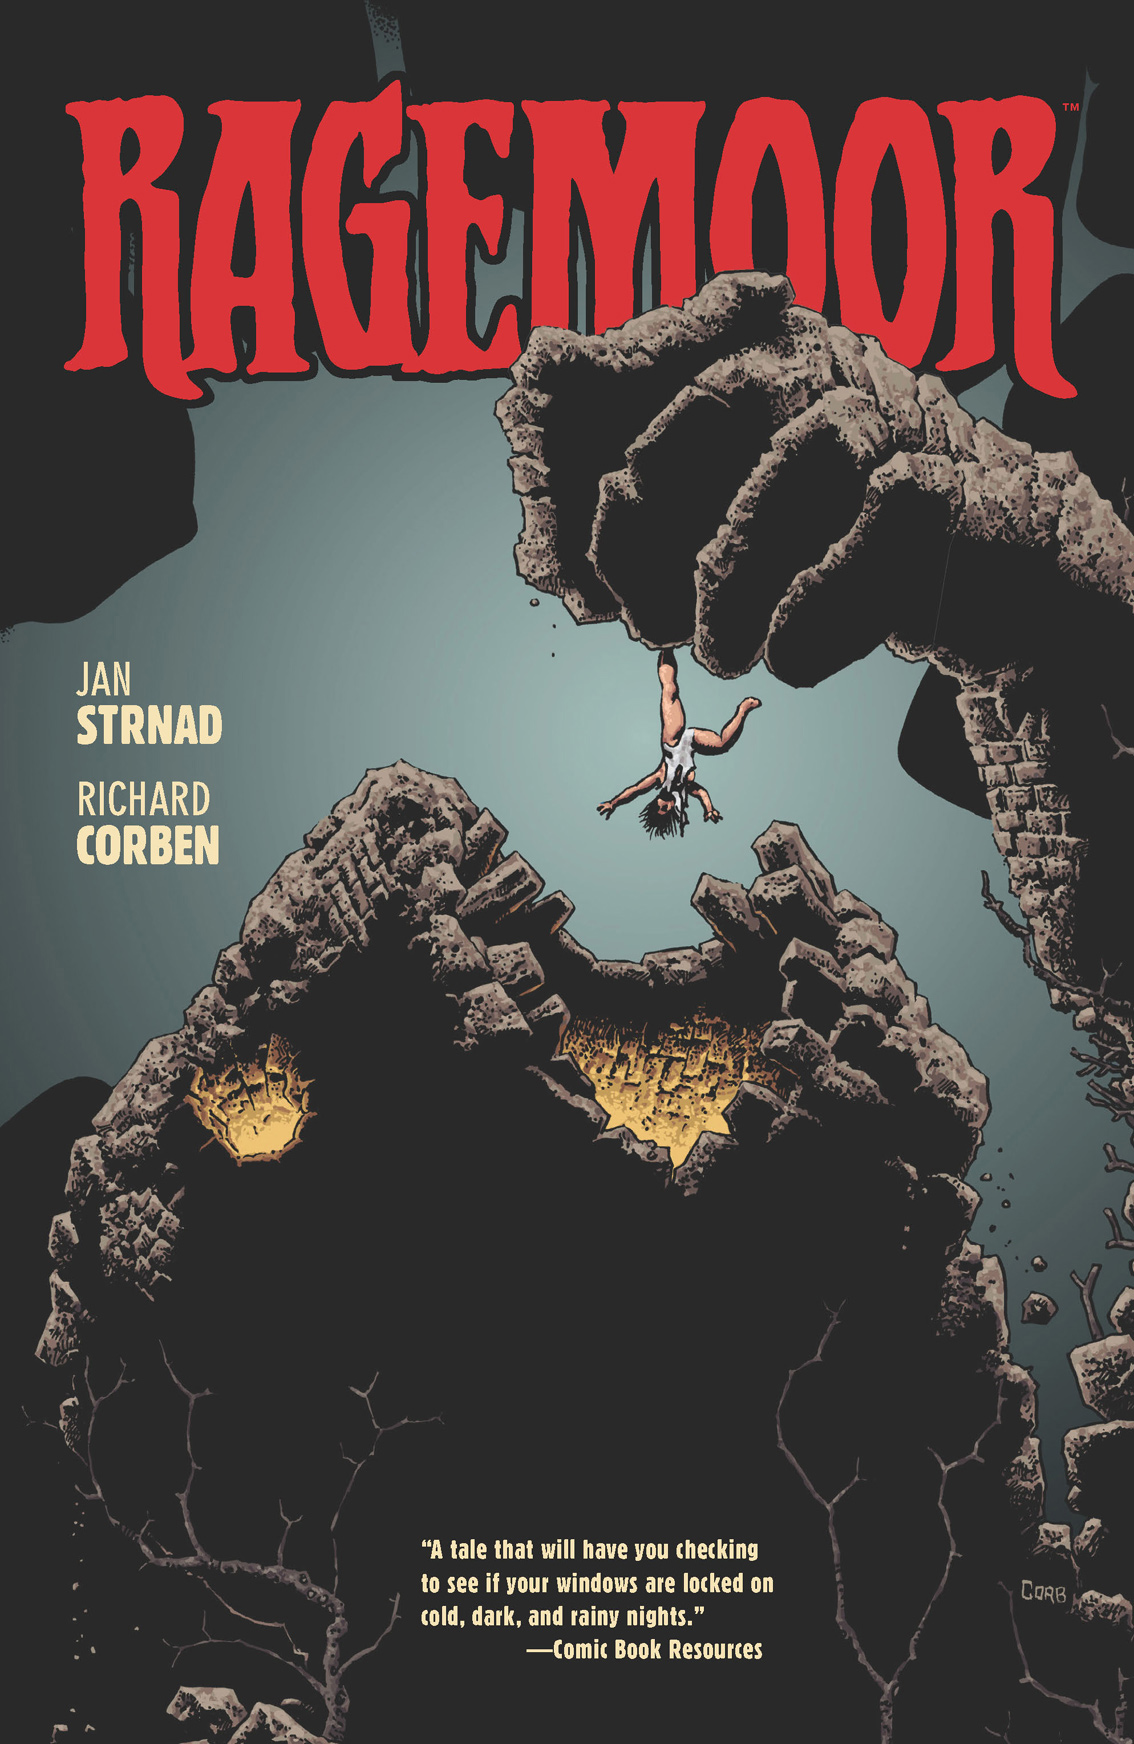 Ragemoor By: Jan Strnad, Richard Corben (Artist), Richard Corben (Cover Artist)